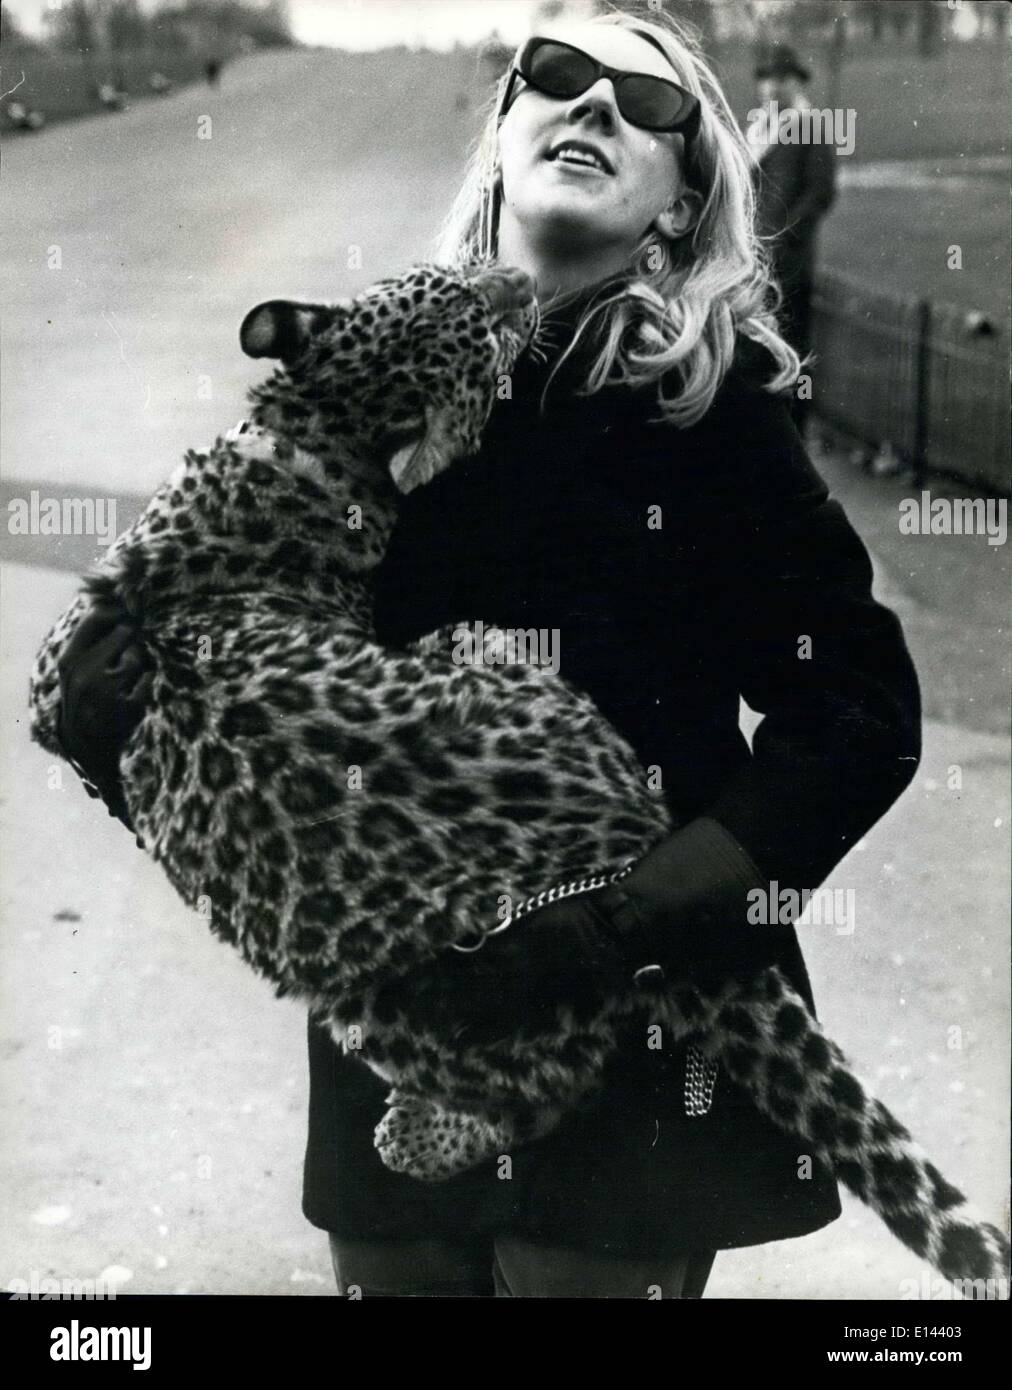 Apr. 04, 2012 - Angela McWilliams, 23 takes Michael her pet leopard down to Kensington Gardens, for his daily walk. - Stock Image